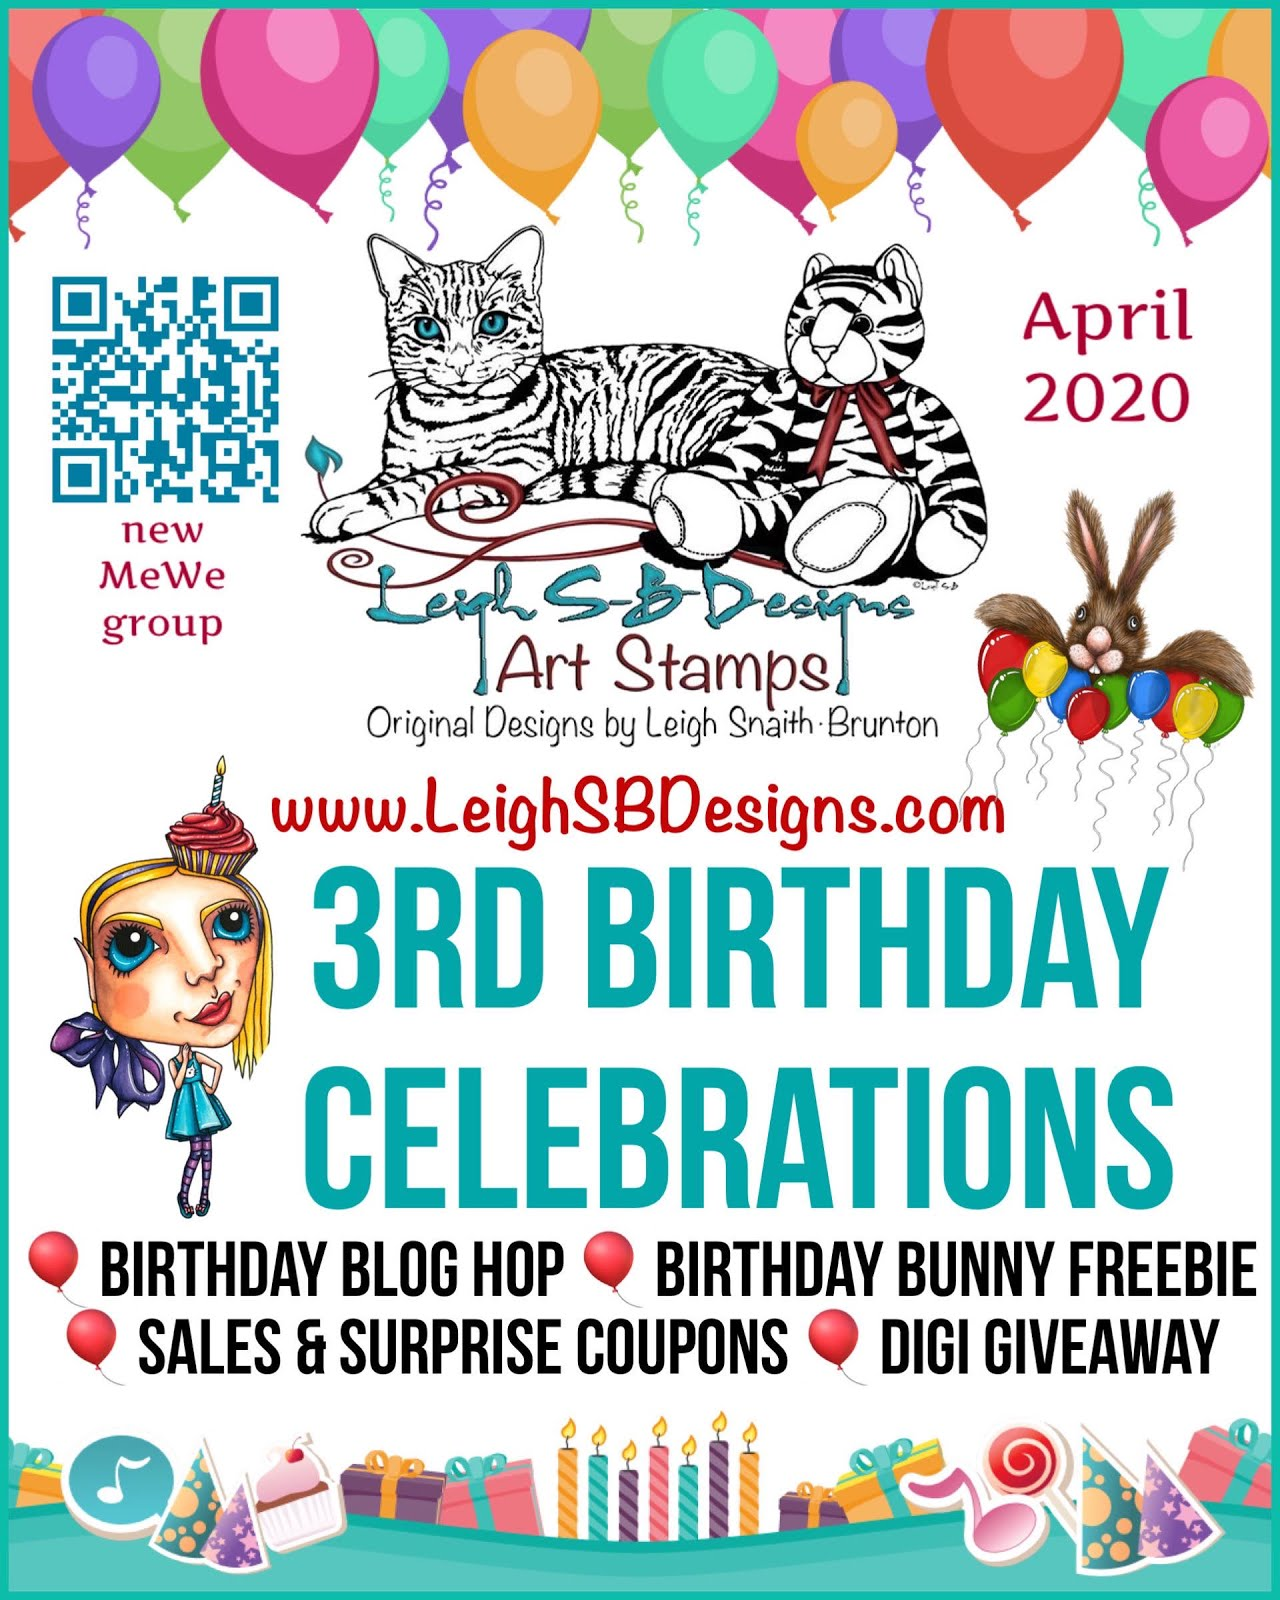 LeighSBDesigns 3rd Birthday Celebrations